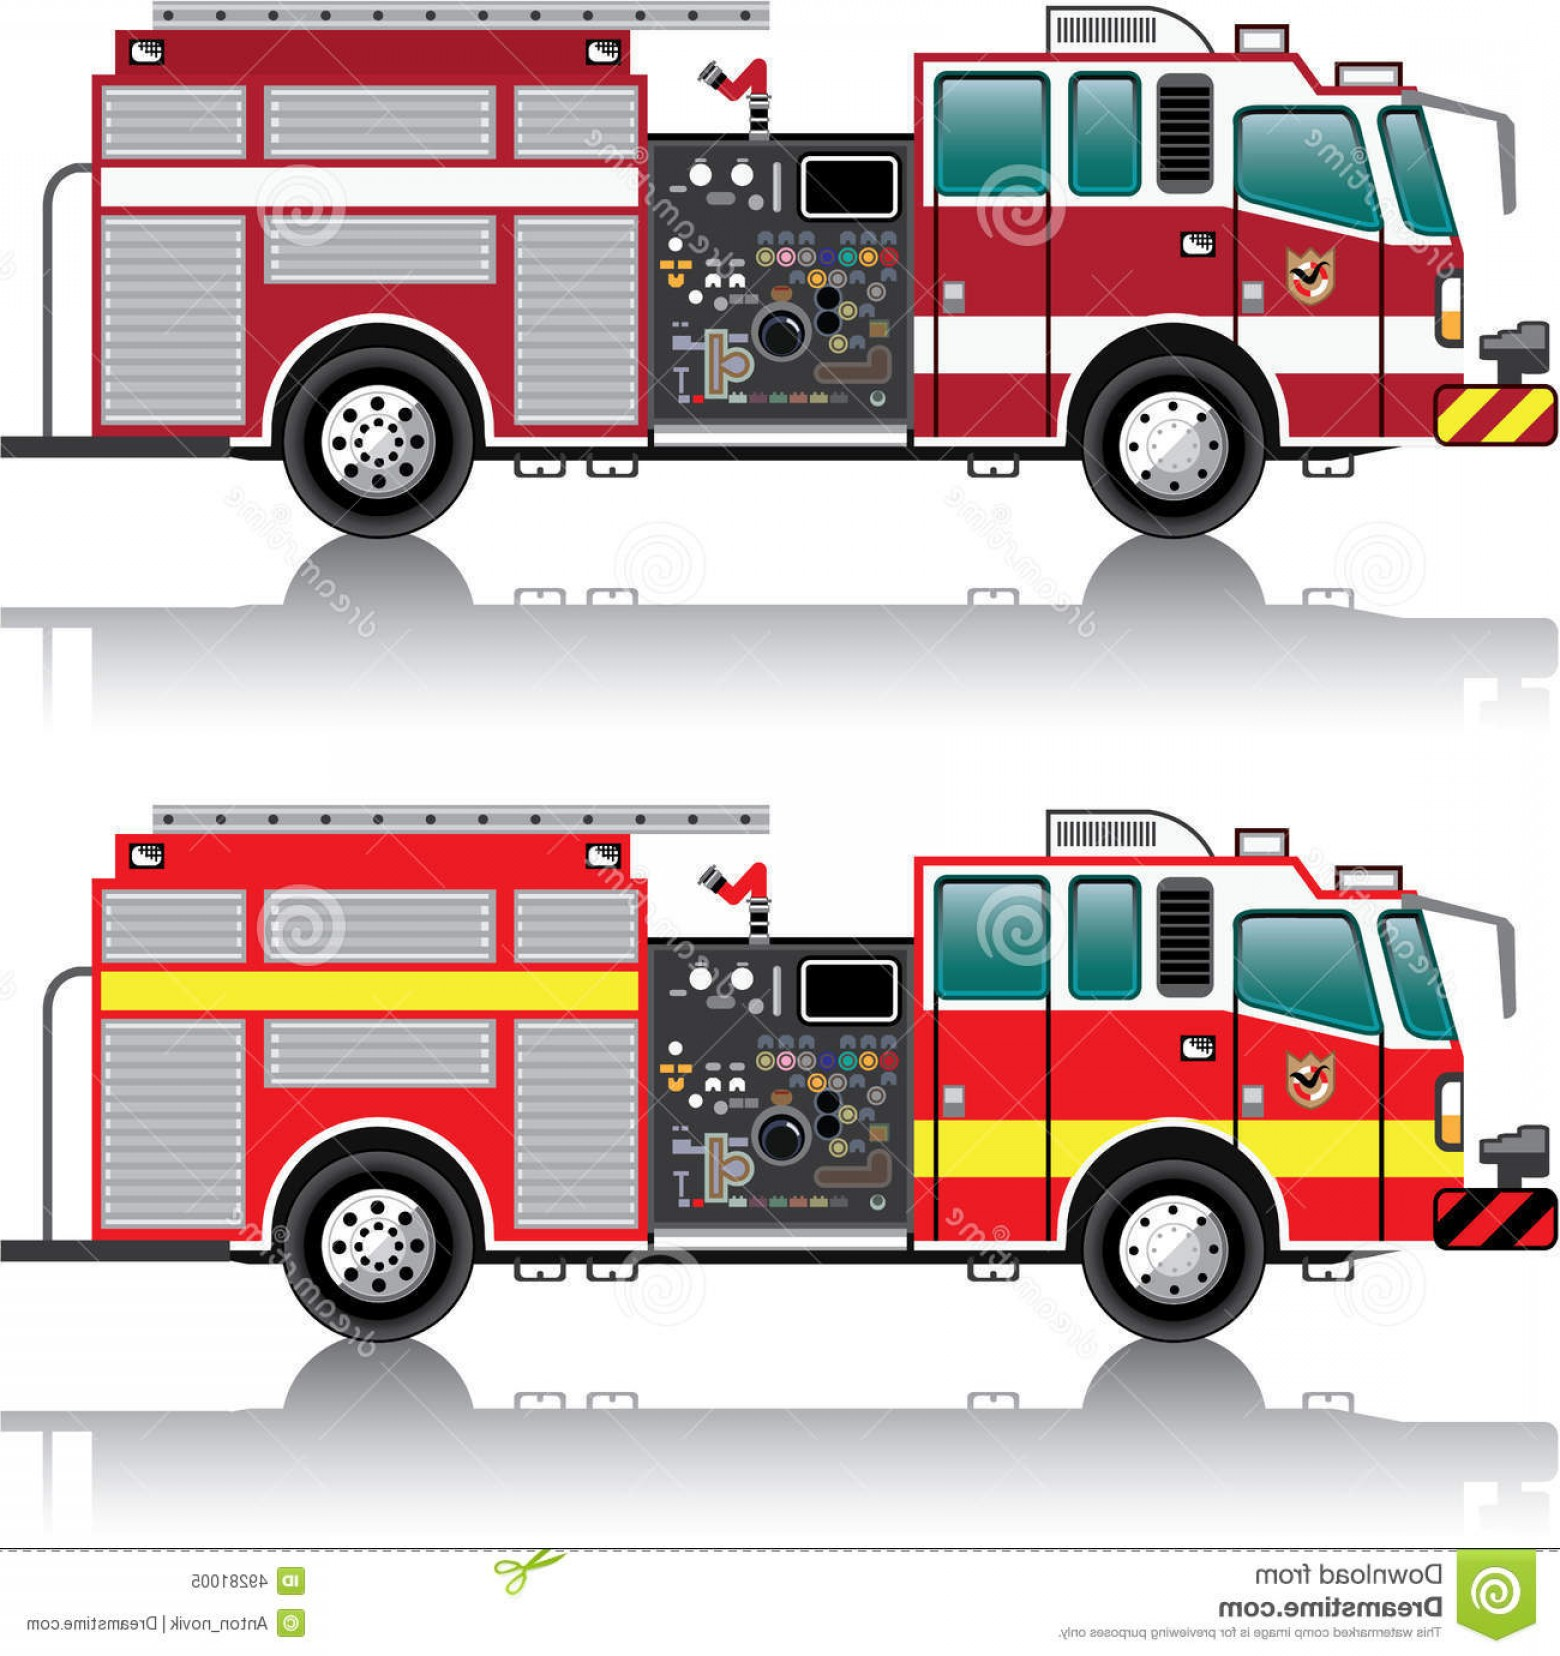 Fire Truck Vector Art: Stock Illustration Firetruck Vector Illustration Clip Art Eps File Image